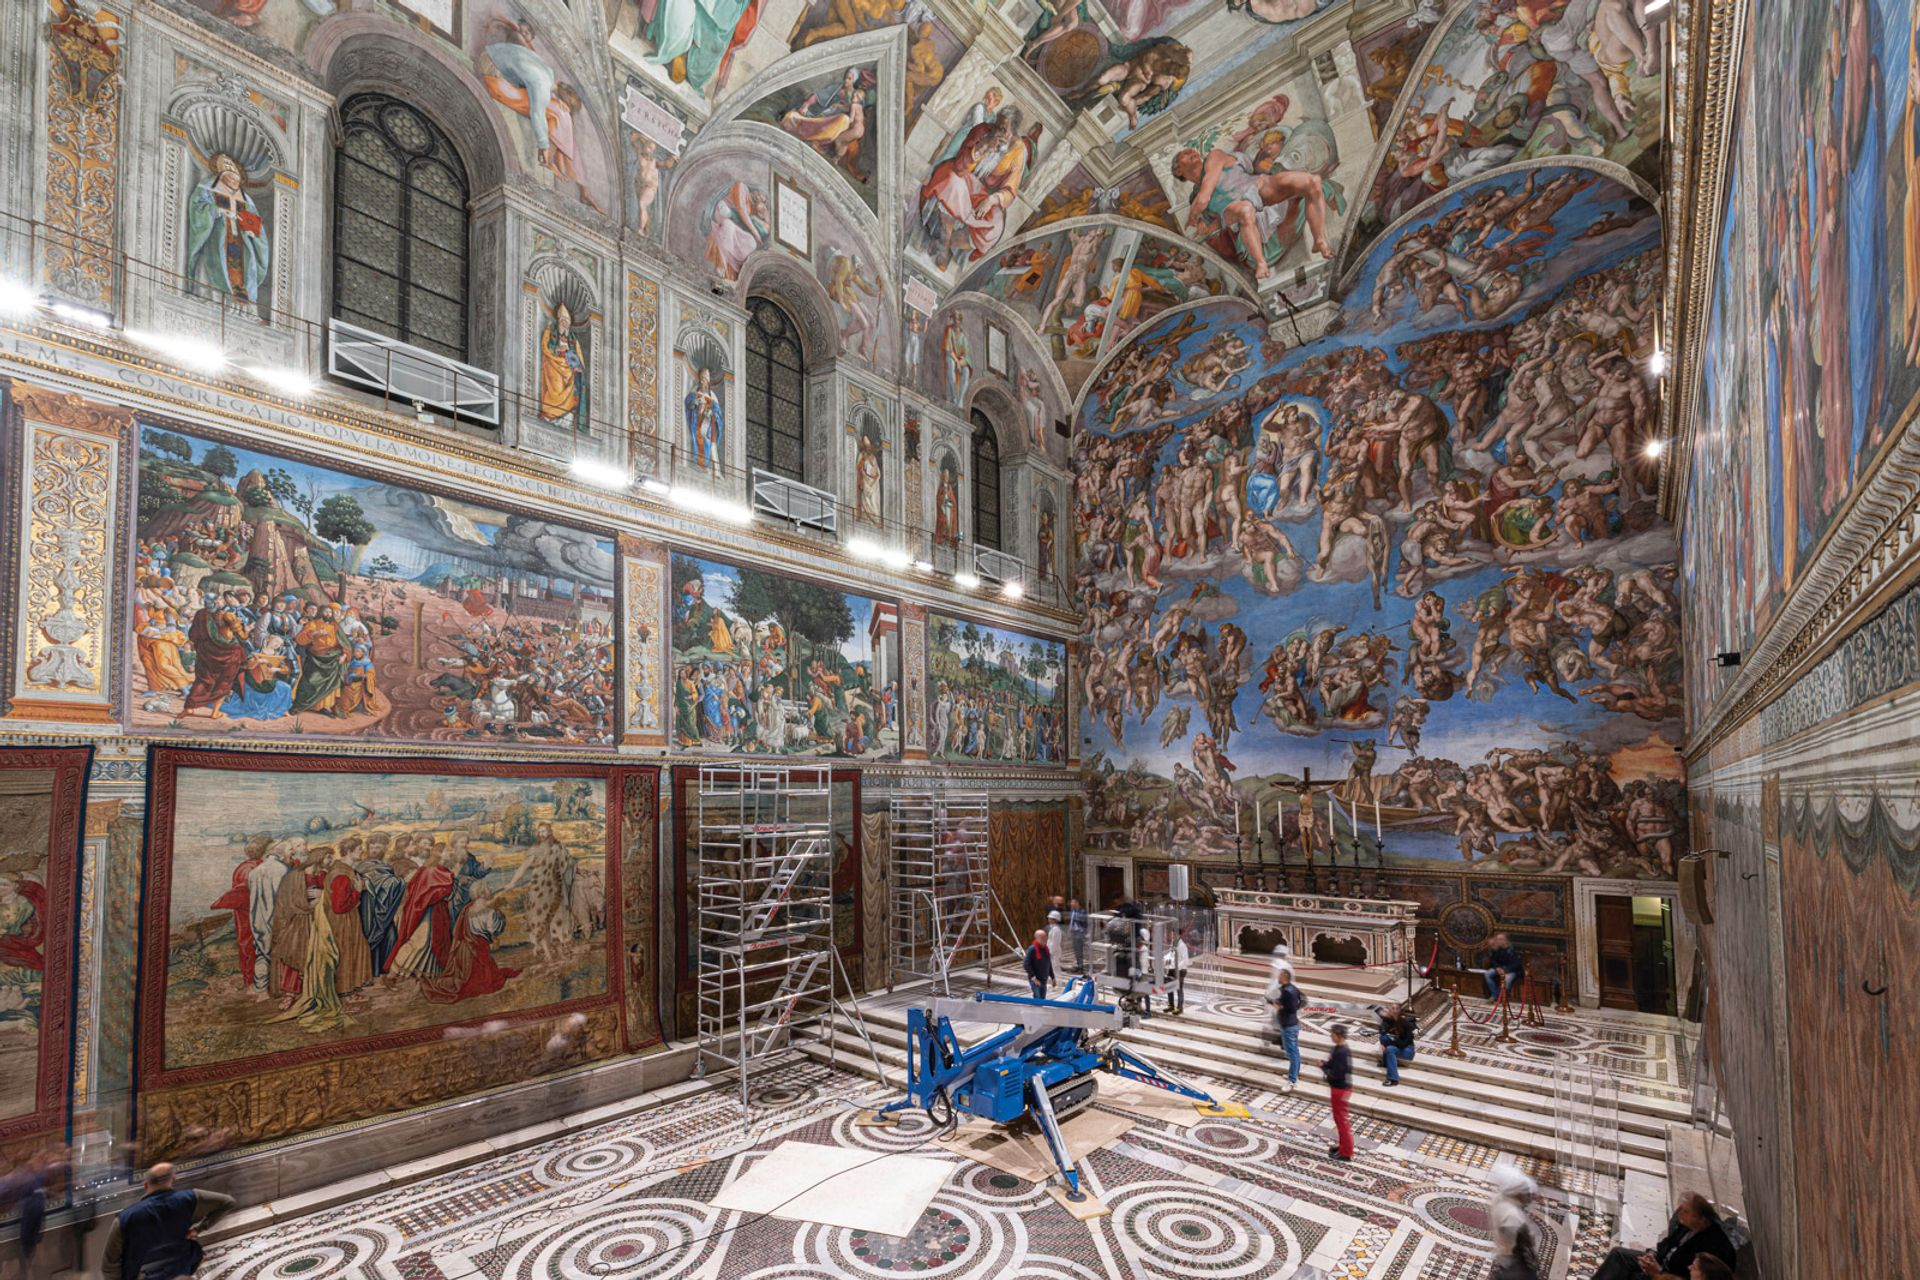 Pieter van Aelst's tapestries of the ten-piece set The Acts of the Apostles (1519-21), woven from large-scale gouache cartoons by Raphael (around 1515-16), on display in the Sistine Chapel © Governatorato SCV – Direzione dei Musei. Photo: Giampaolo Capone